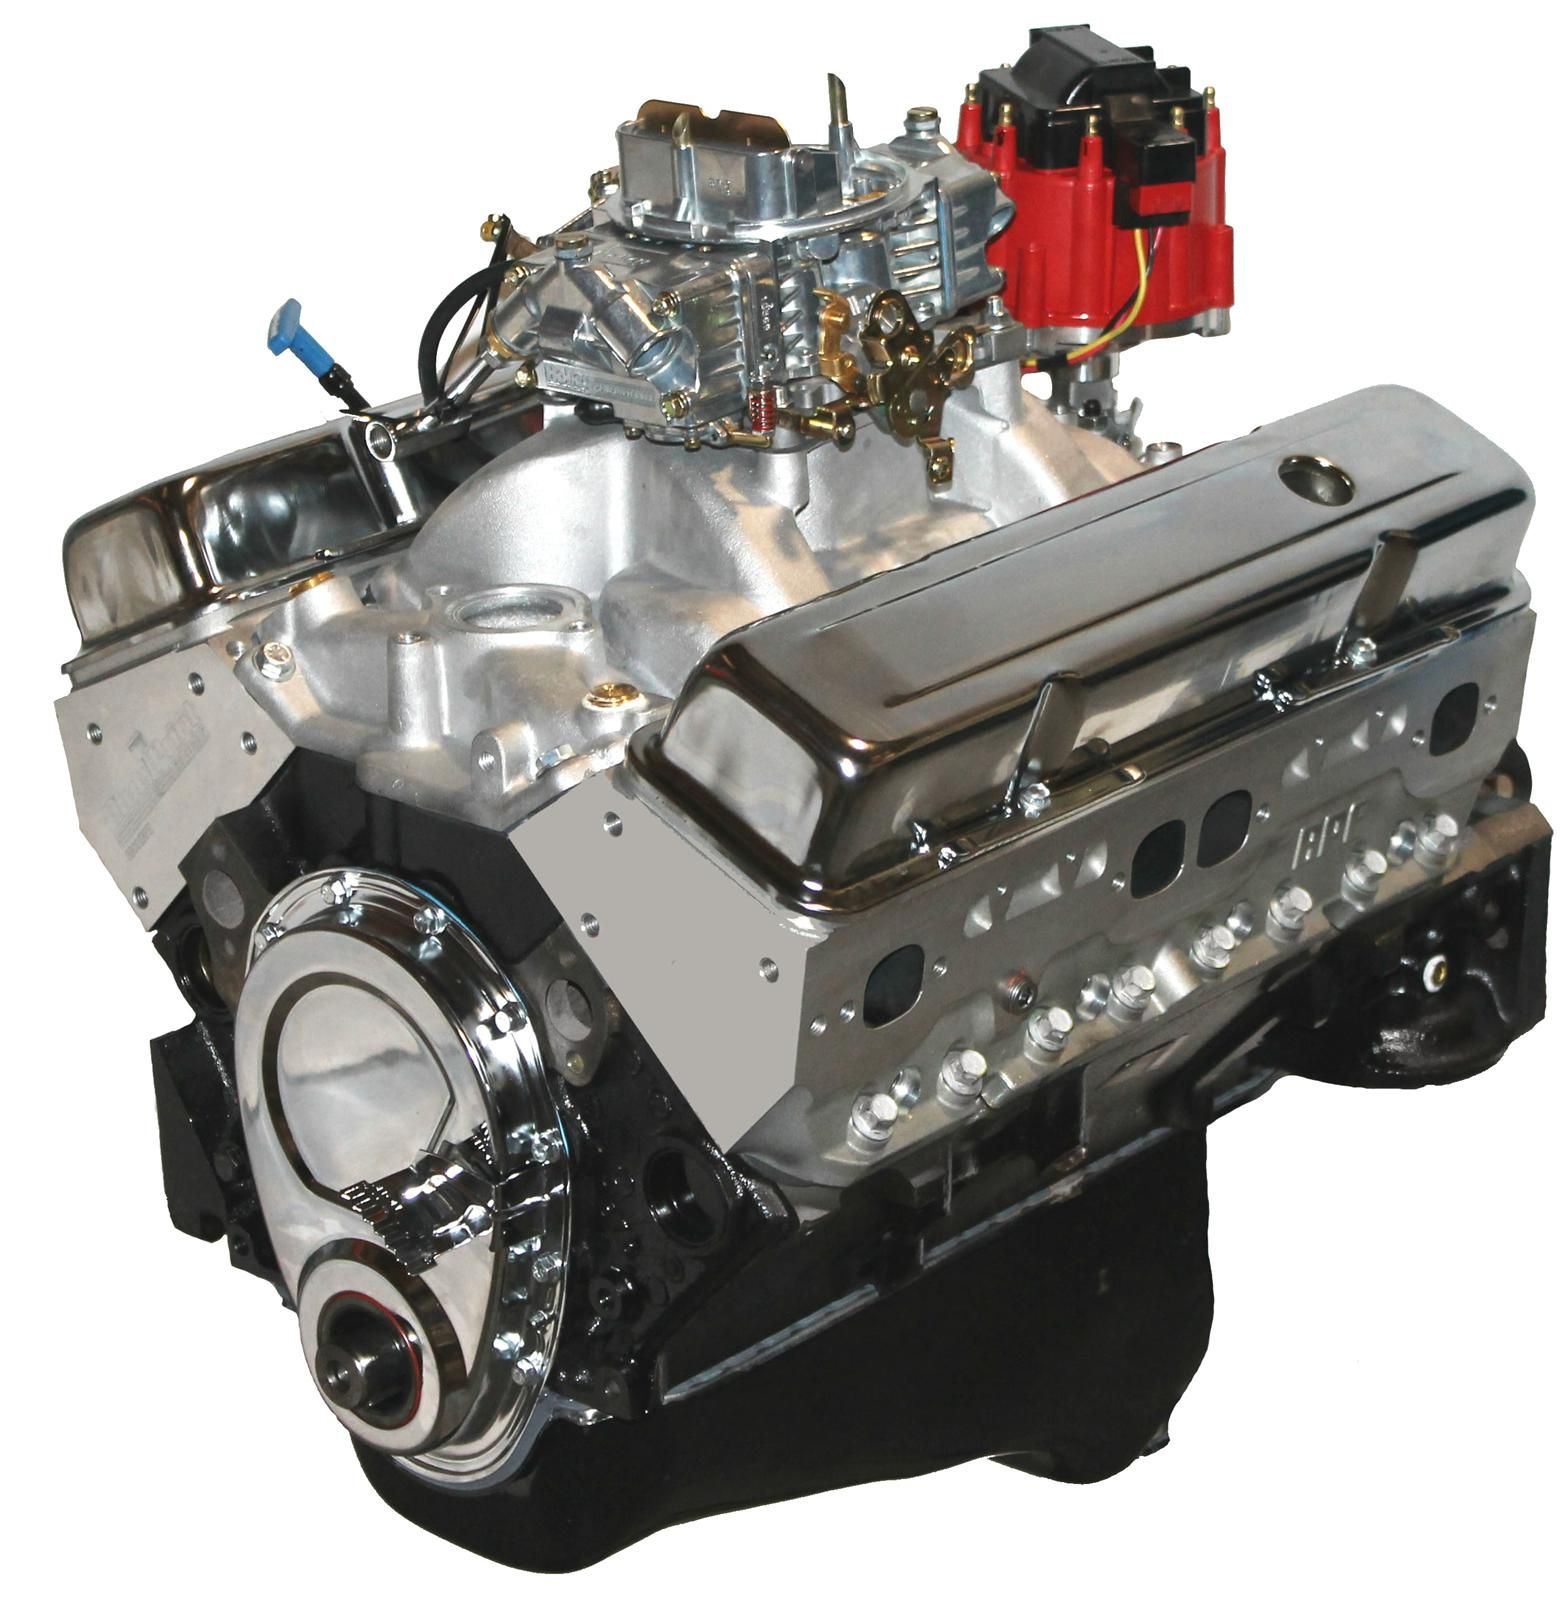 Find blueprint engines gm 383 cid 430hp stroker base dressed blueprint engines gm 383 cid 430hp stroker base dressed crate engines w aluminum heads bp38313ctc1 malvernweather Image collections